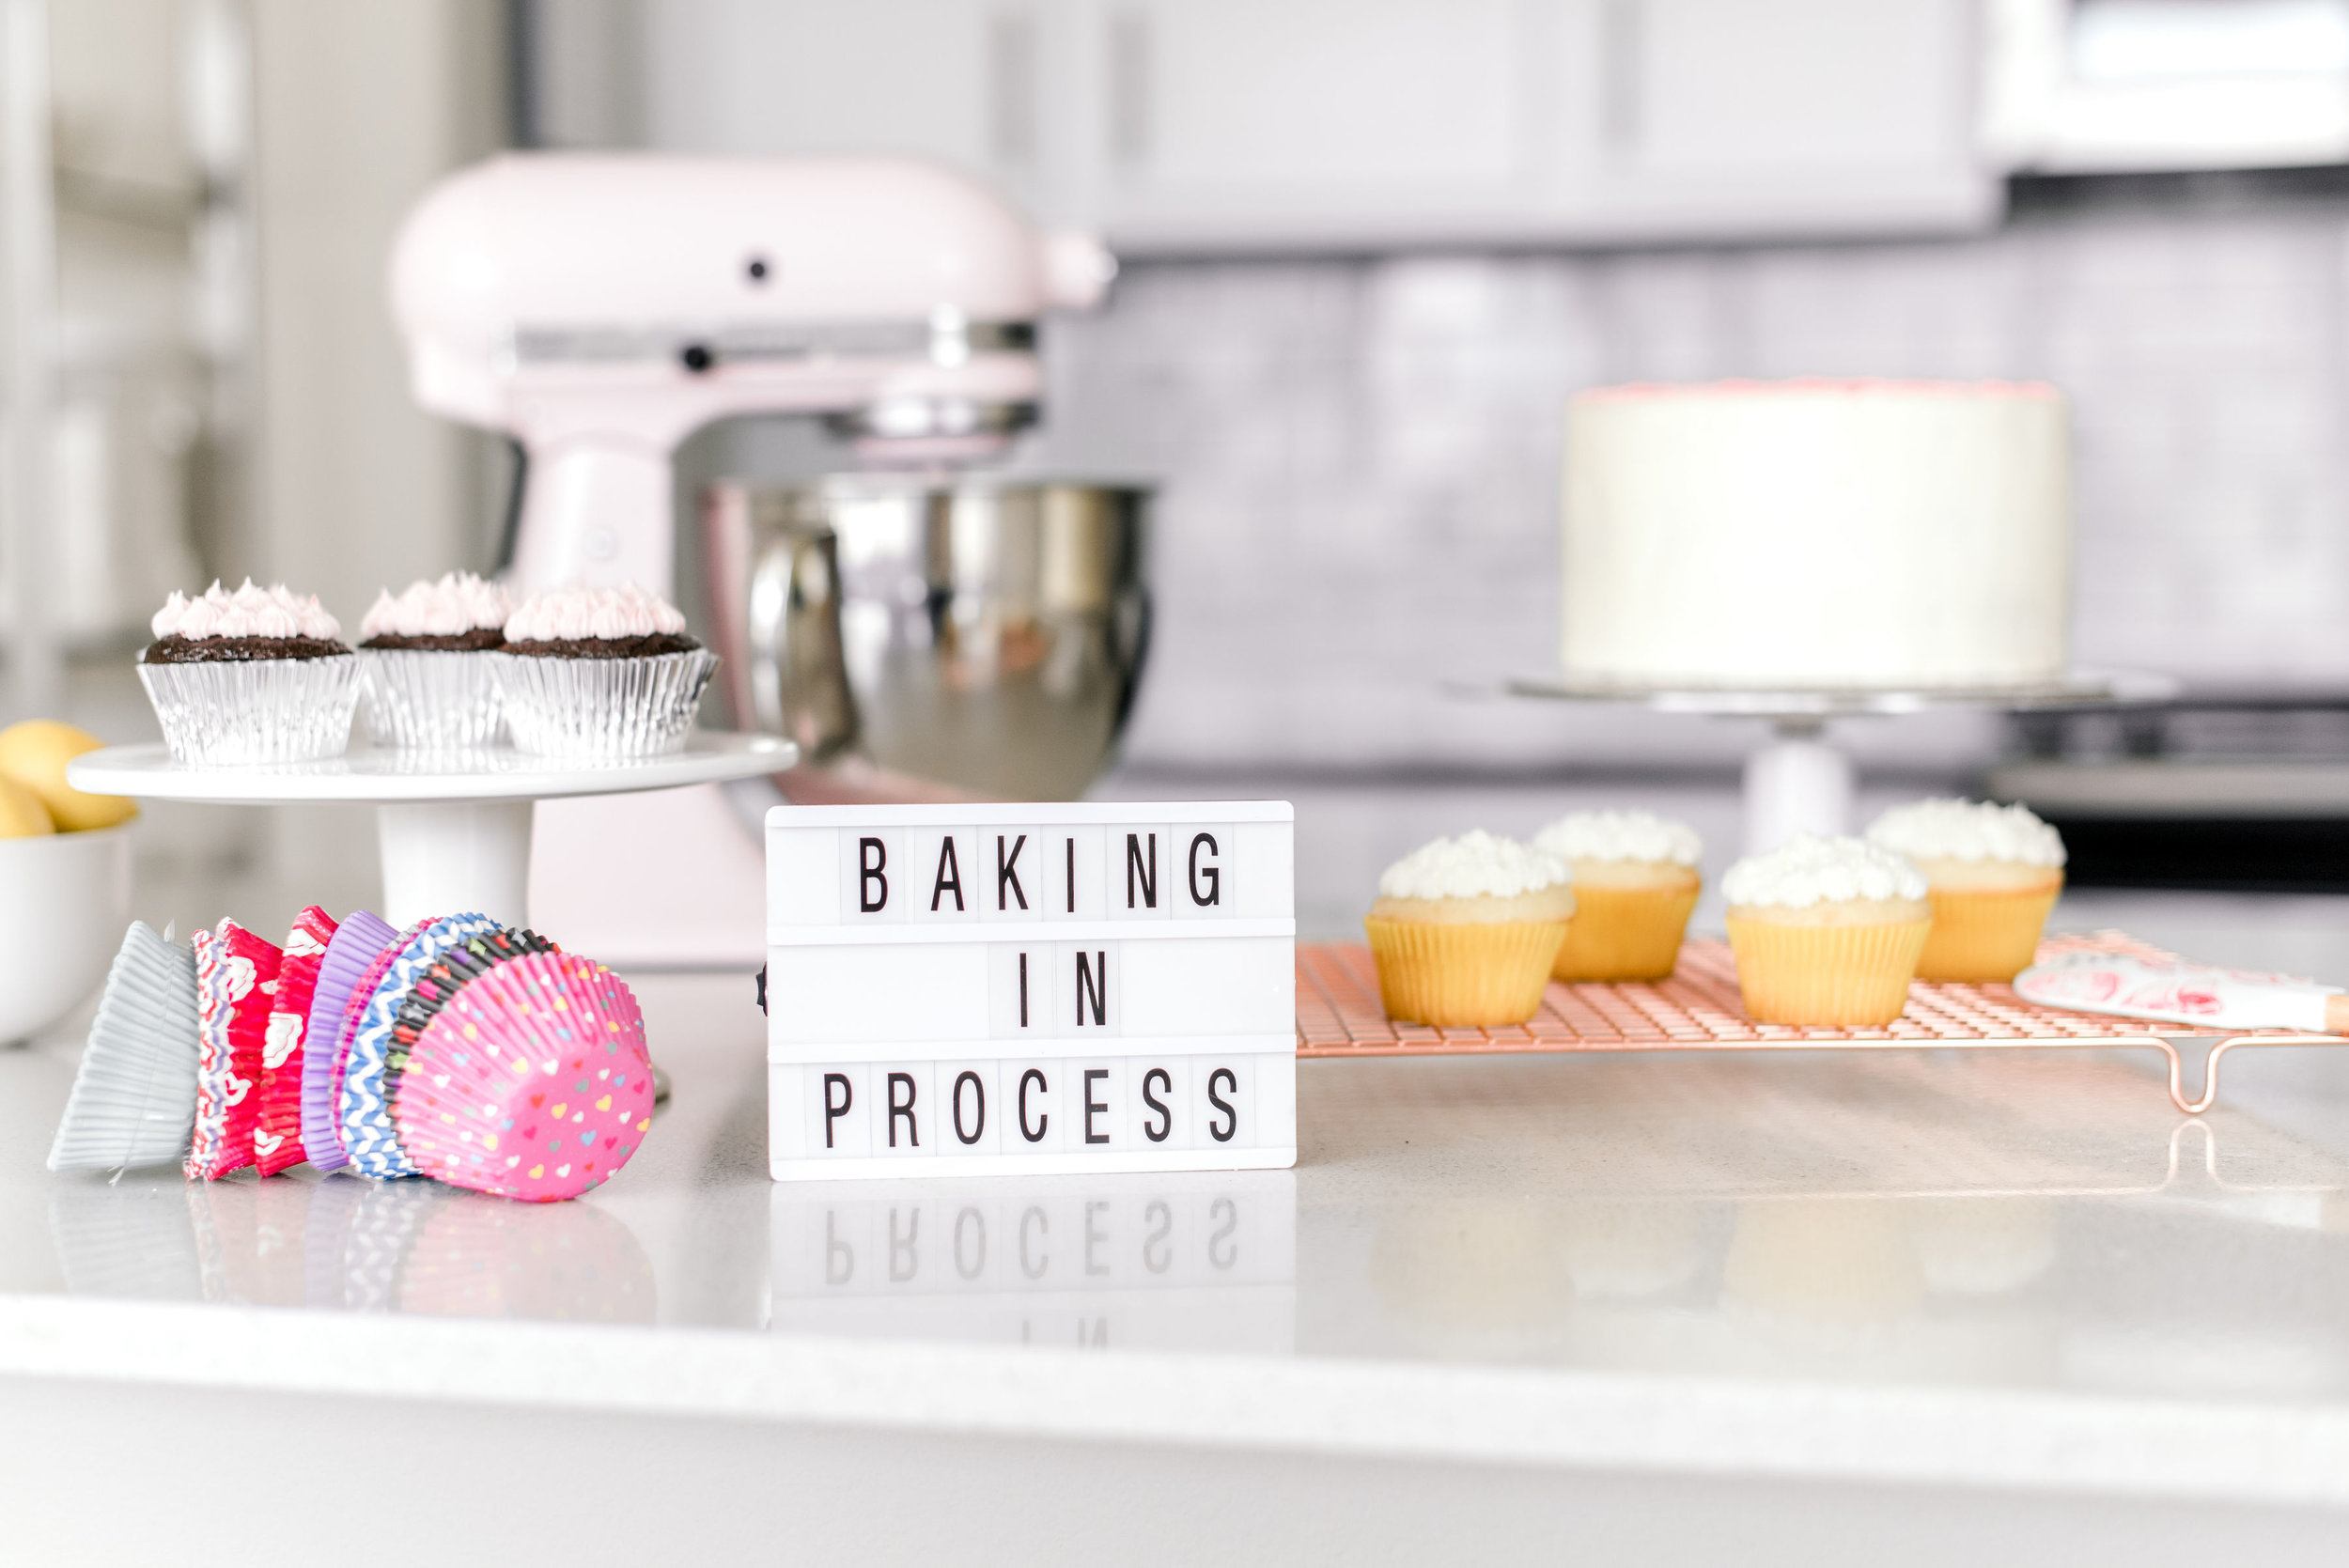 Image capture for Vee's Bakeshoppe by Audrie Dollins